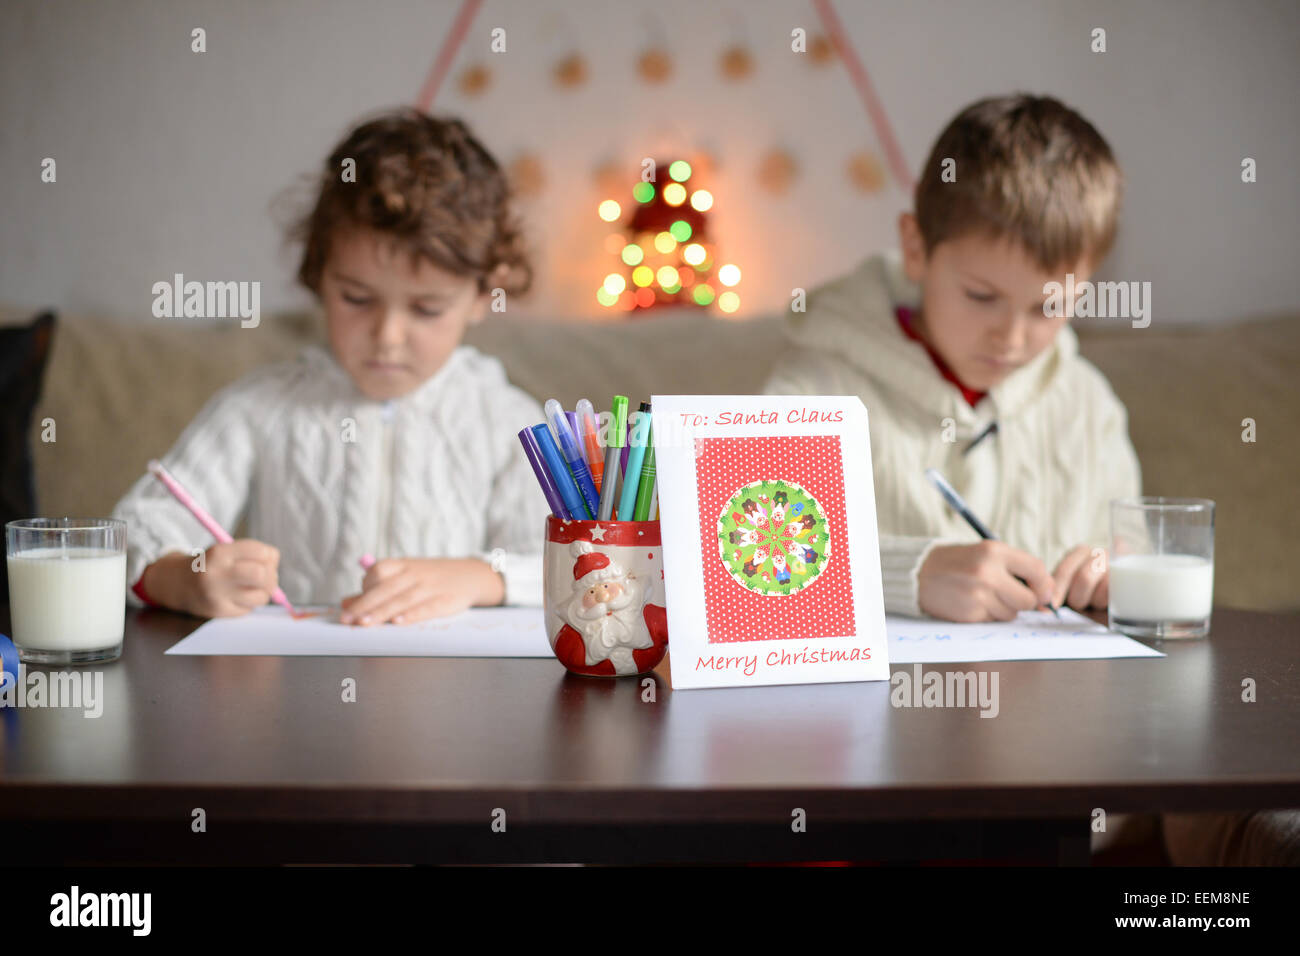 Brother (6-7) and sister (4-5) writing letter to Santa Claus - Stock Image